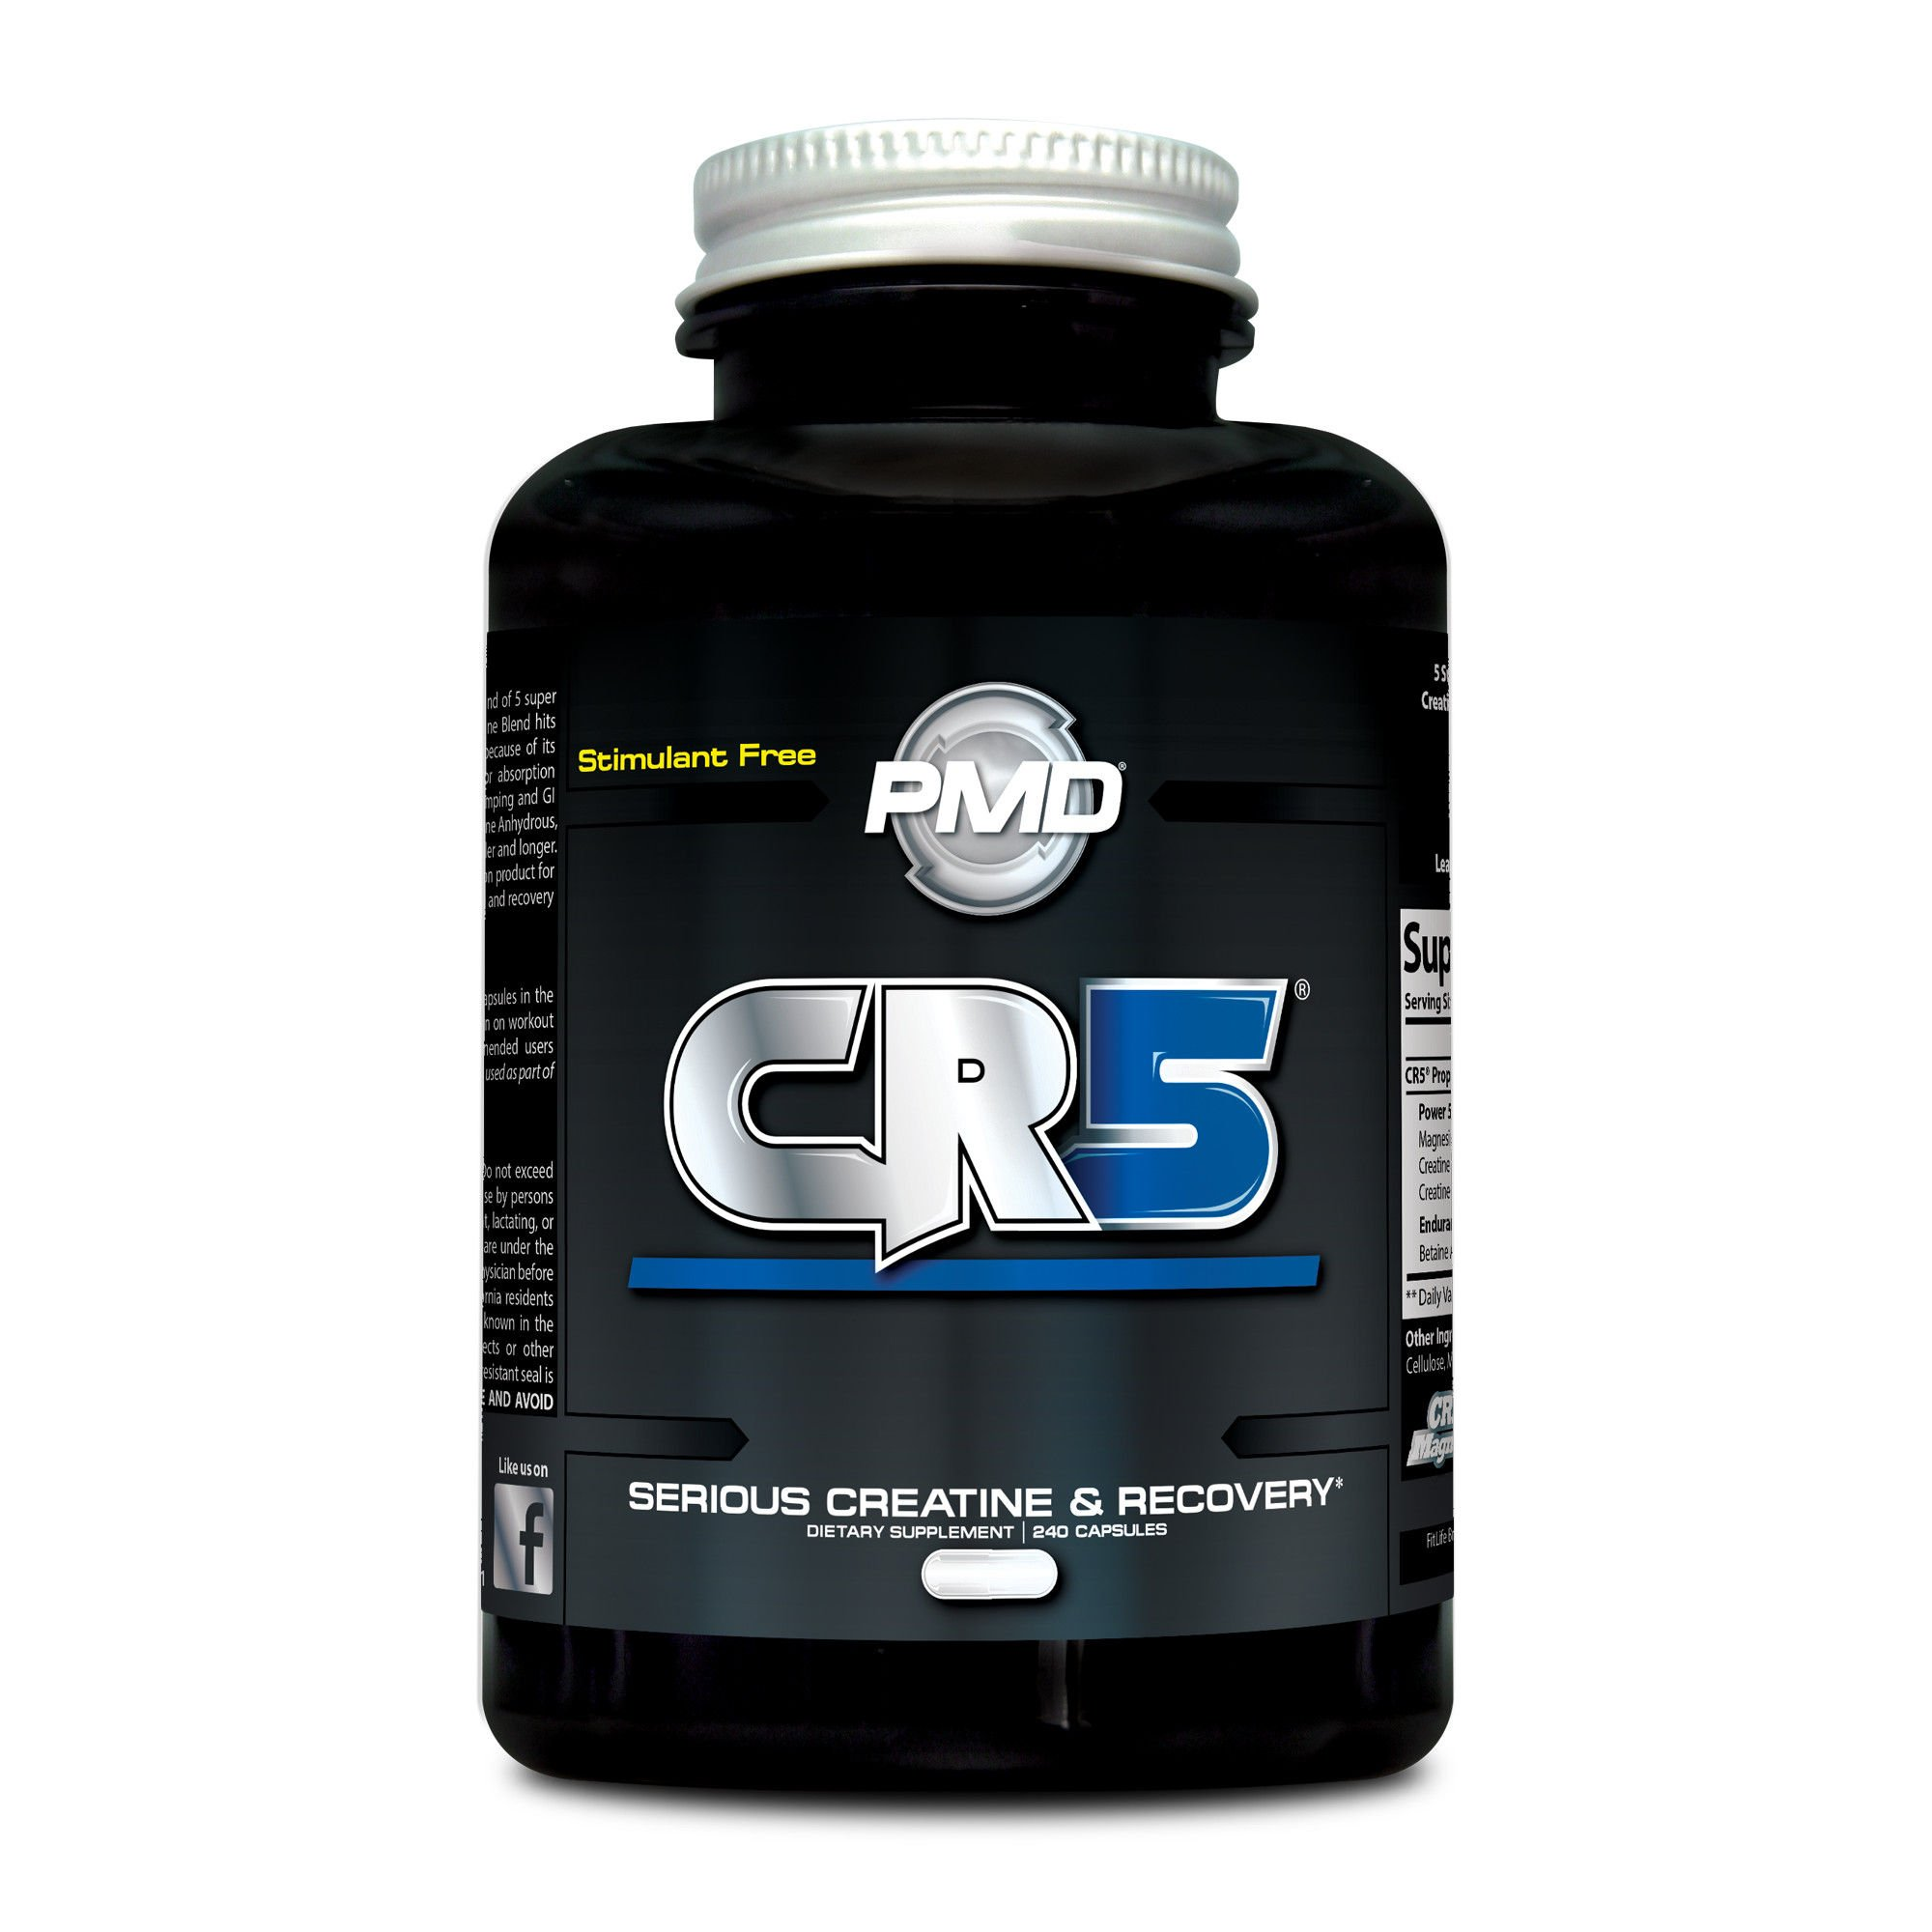 PMD Sports CR5 Professional Creatine Complex - Strength Training, Cardio Exercise, Athletic Performance, Lean Muscle Mass, Fast Recovery and Reduce Soreness - 240 Capsules ... by PMD